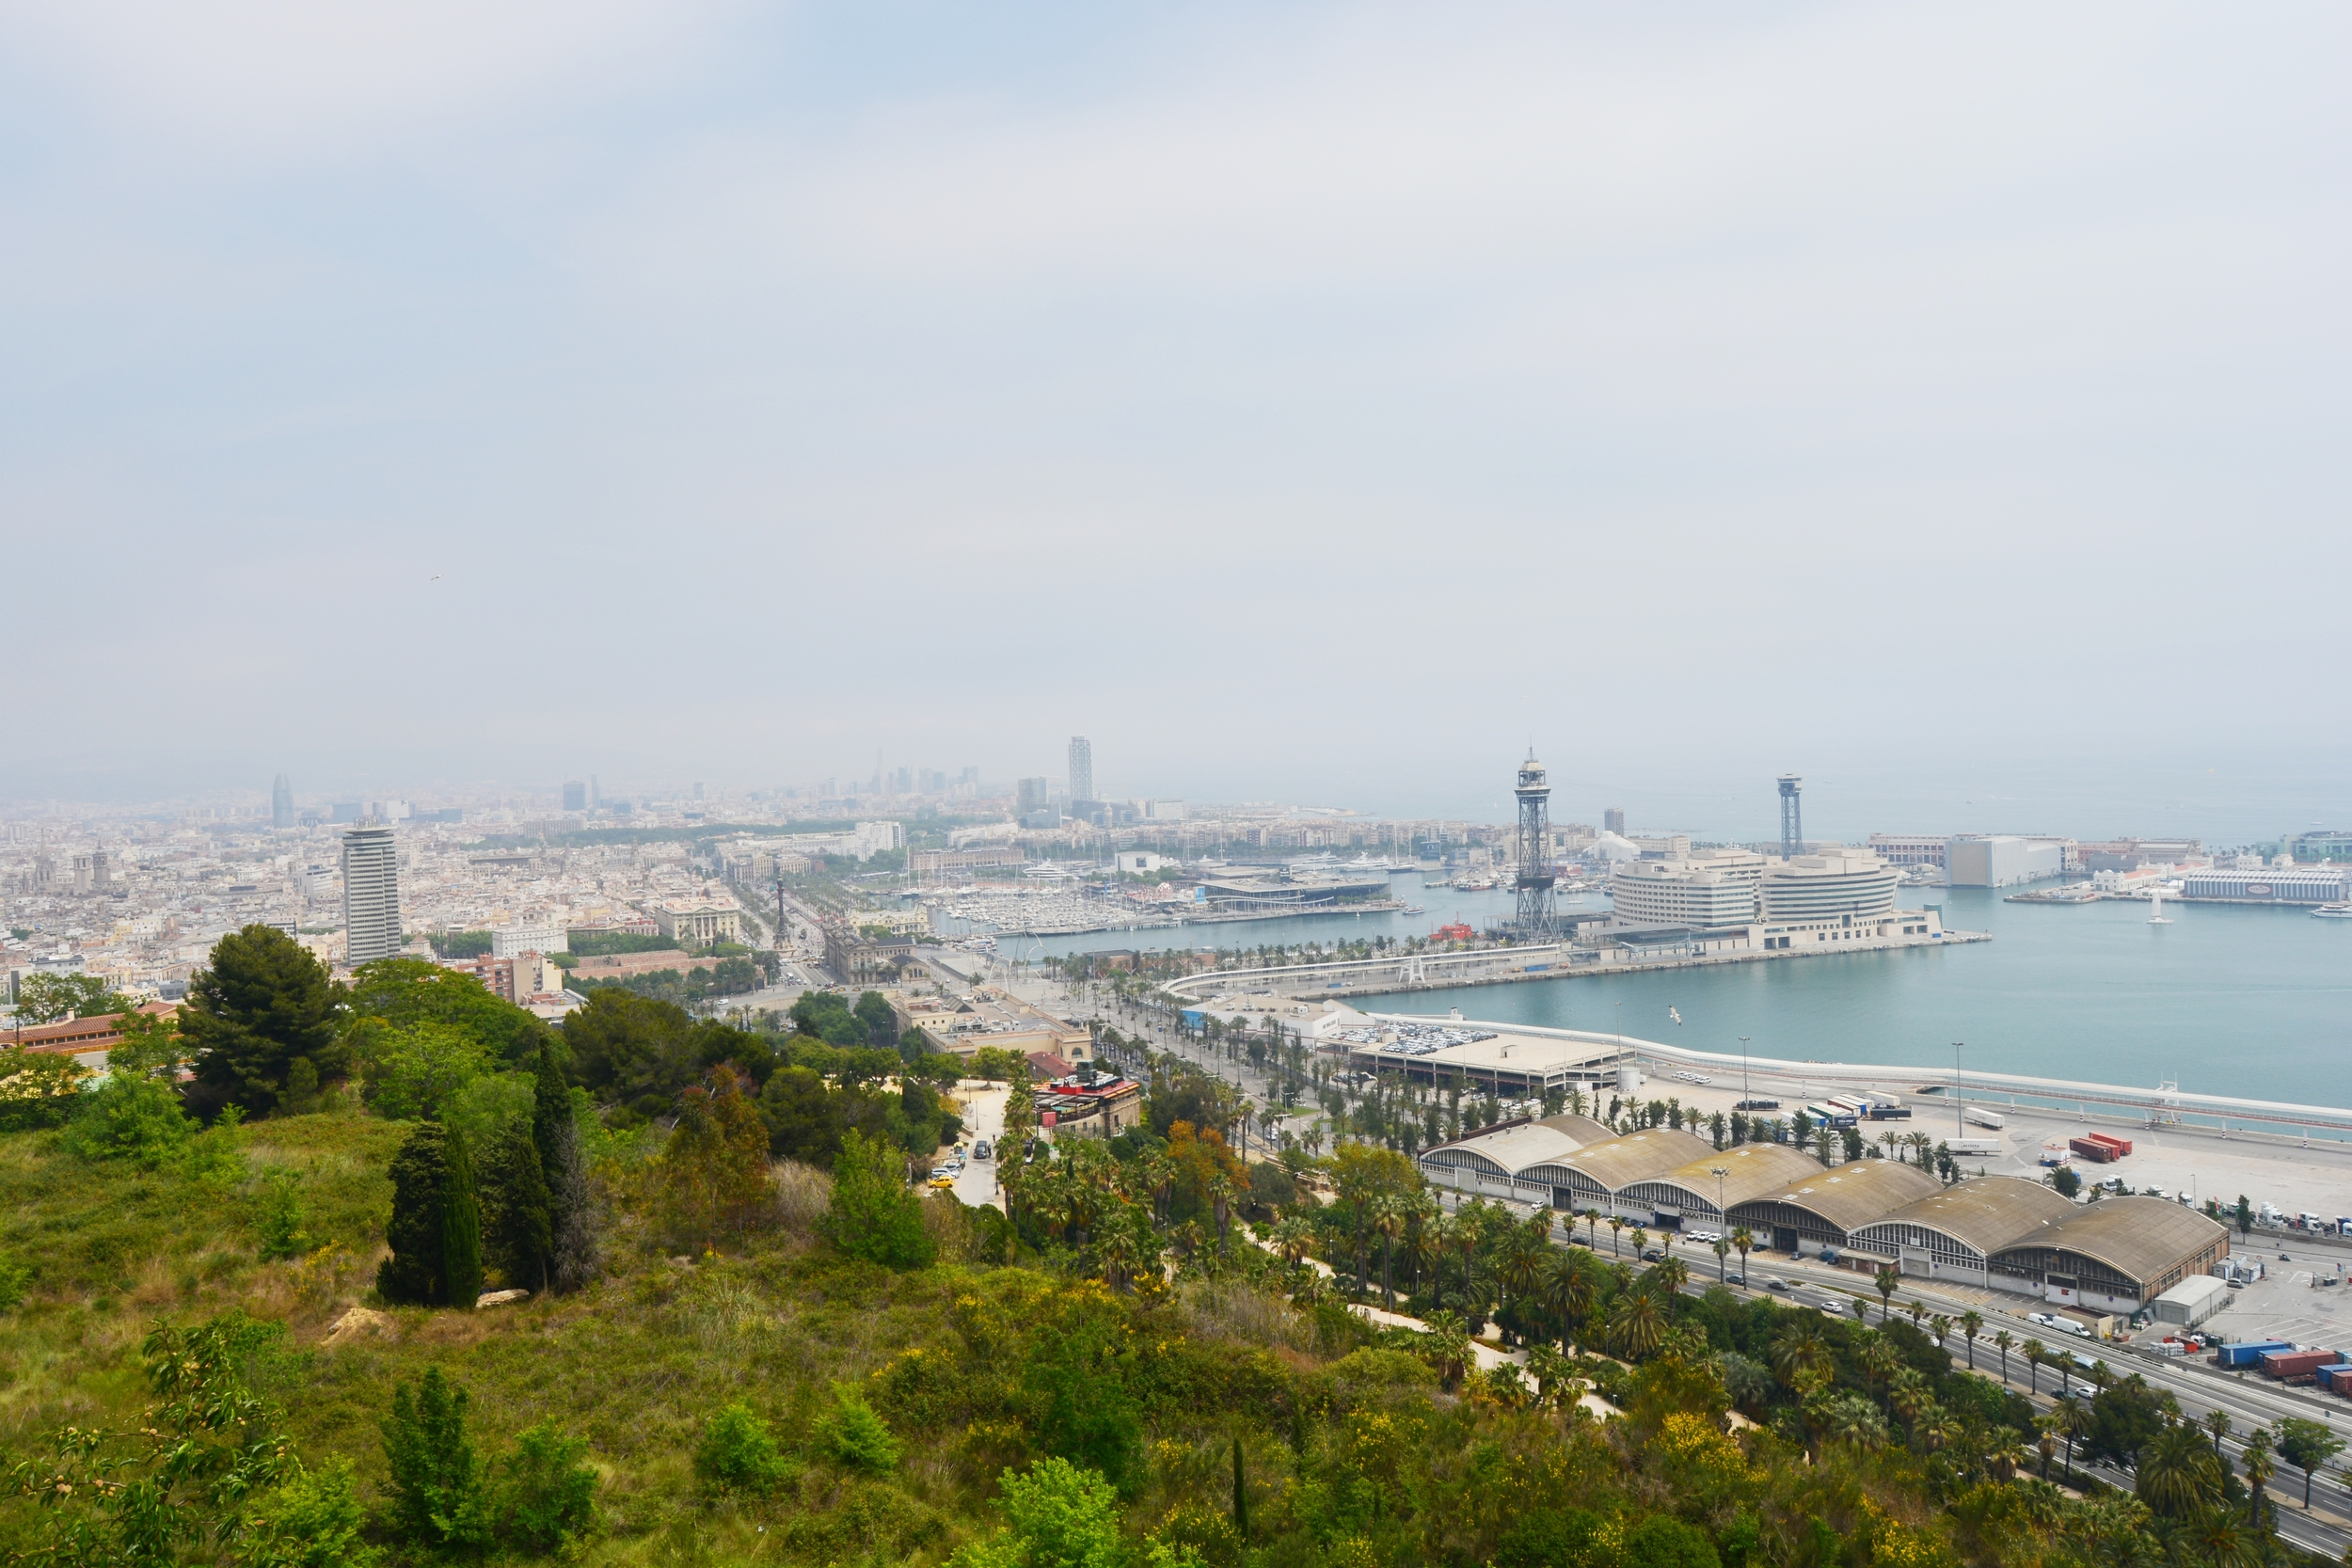 The view from Montjuic, a park atop a hill southwest of the city